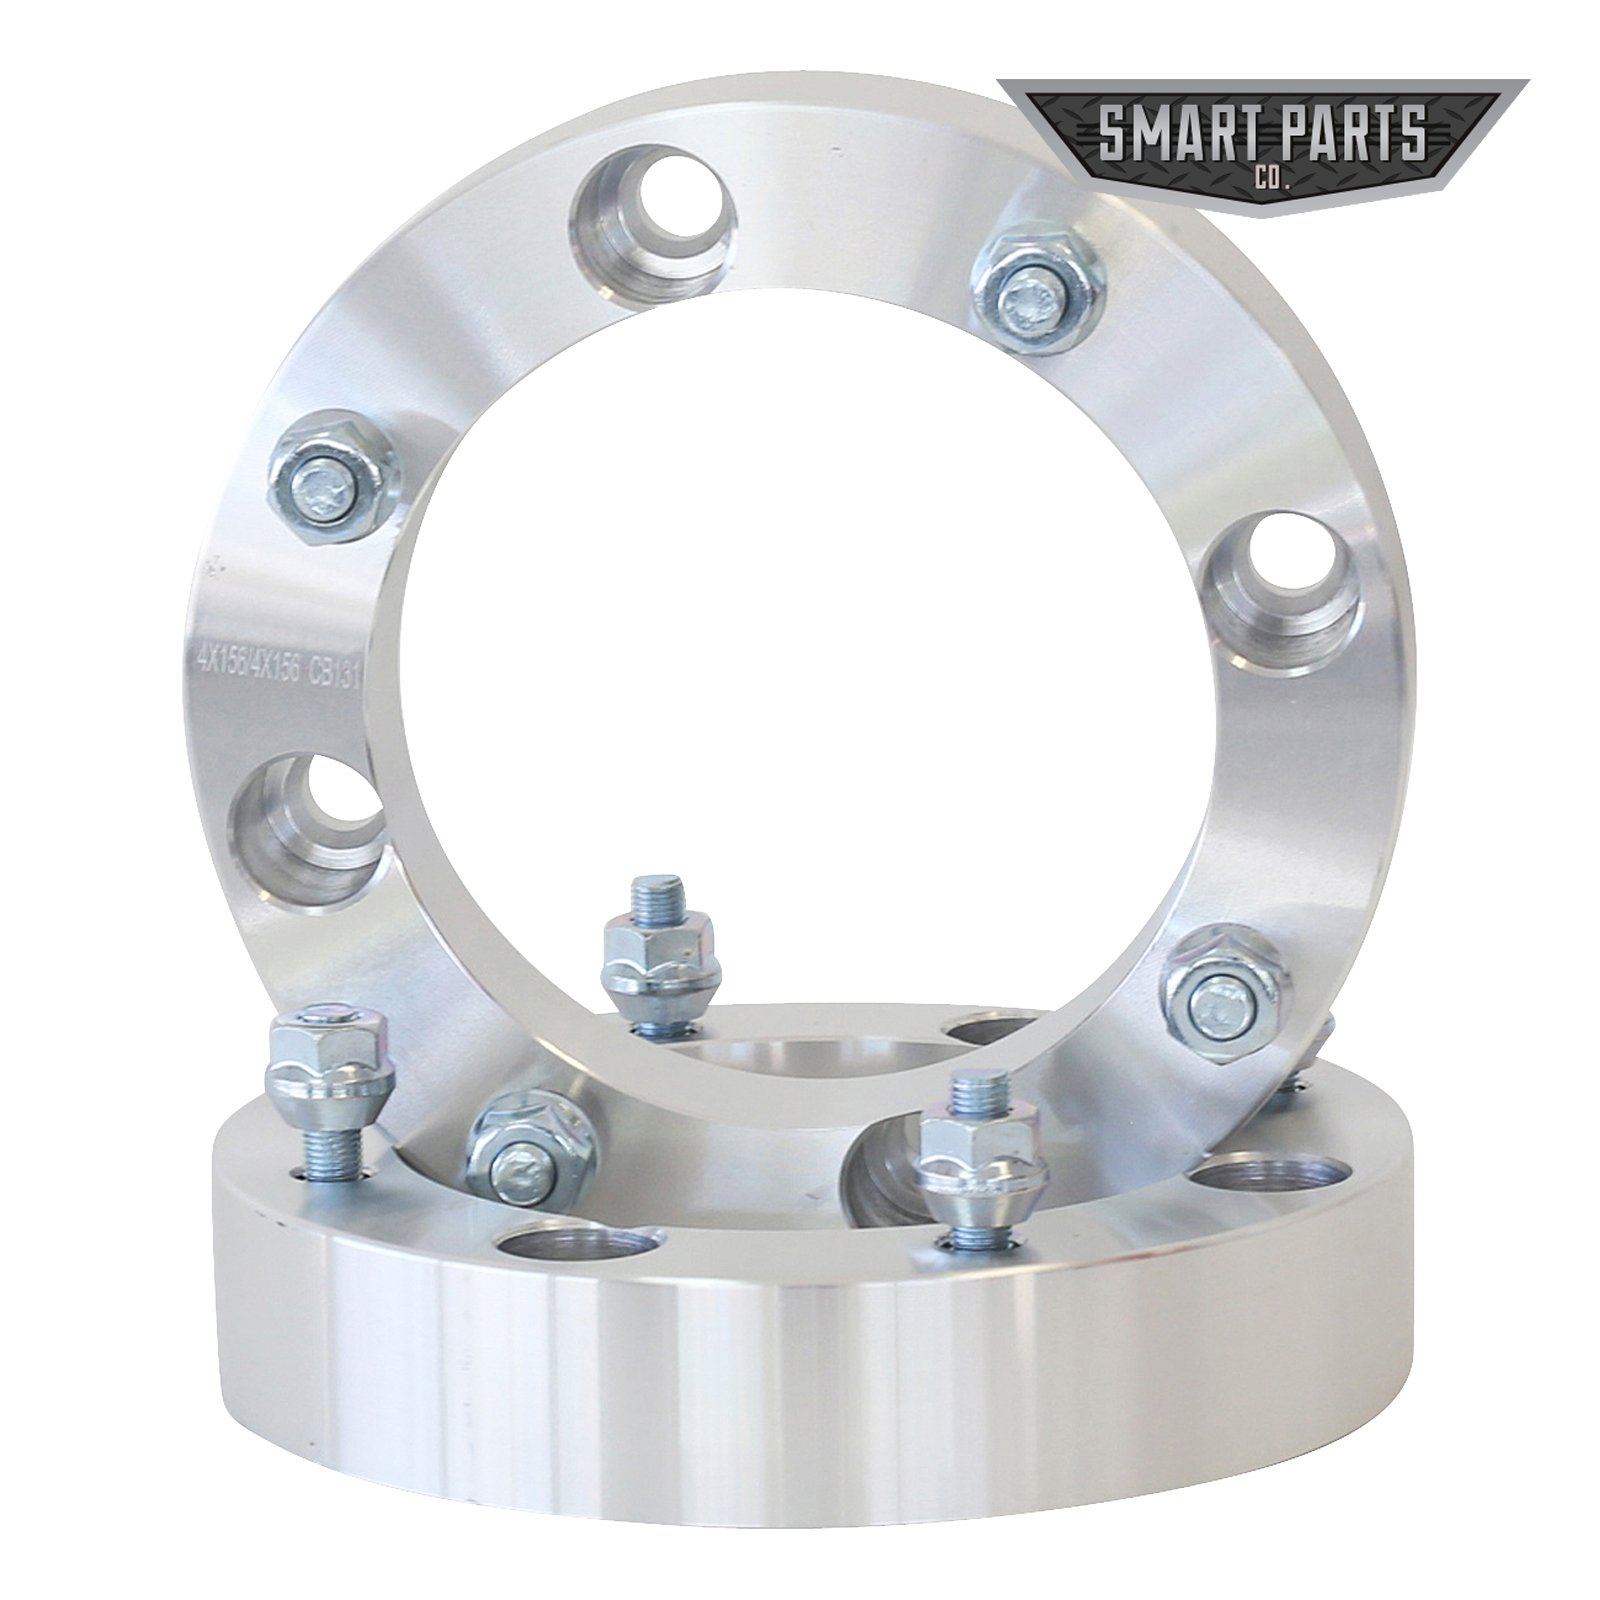 "4 ATV Wheel Spacers 4x156 – wheel spacer 1.50"" thick; I.D.=131mm; counter bore=141mm X 9.1mm deep; studs = M12x1.5 Polaris RZR Ranger by Smart Parts (Image #2)"